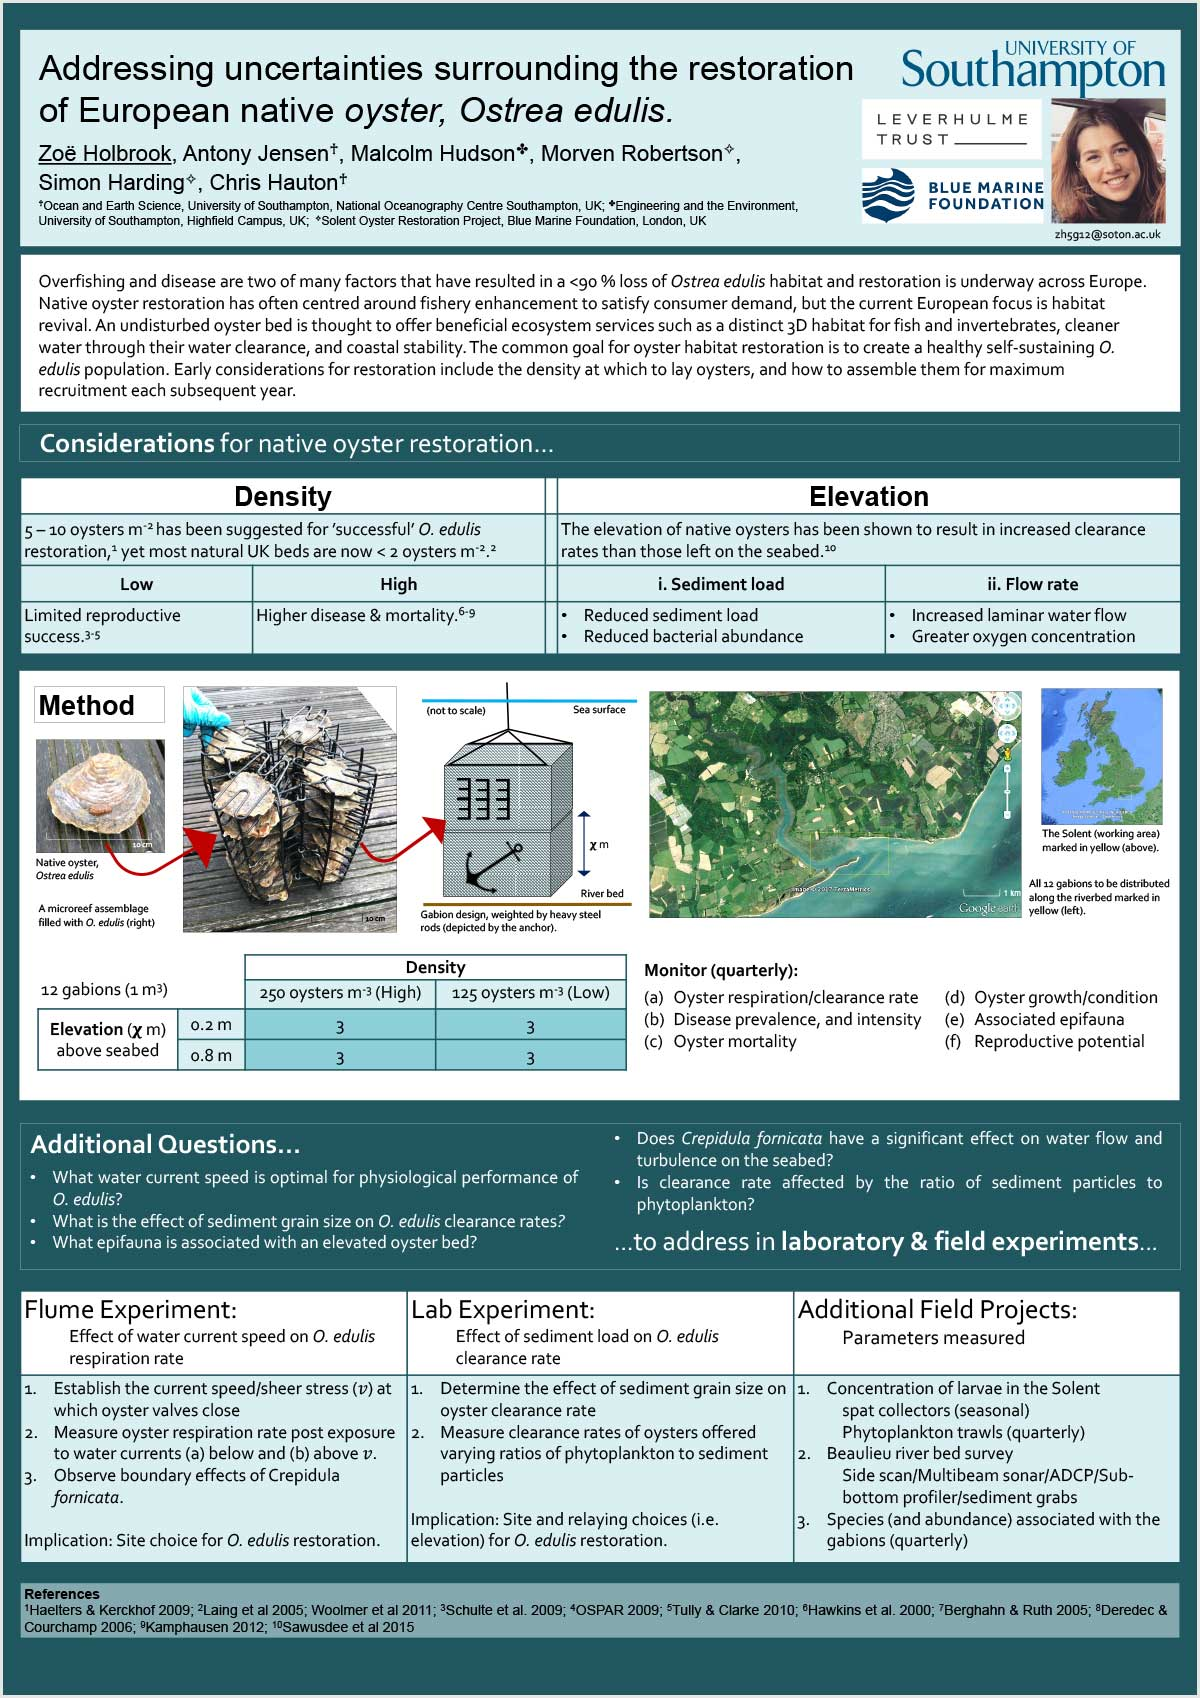 Addressing uncertainties surrounding the restoration of European native oyster, Ostrea edulis